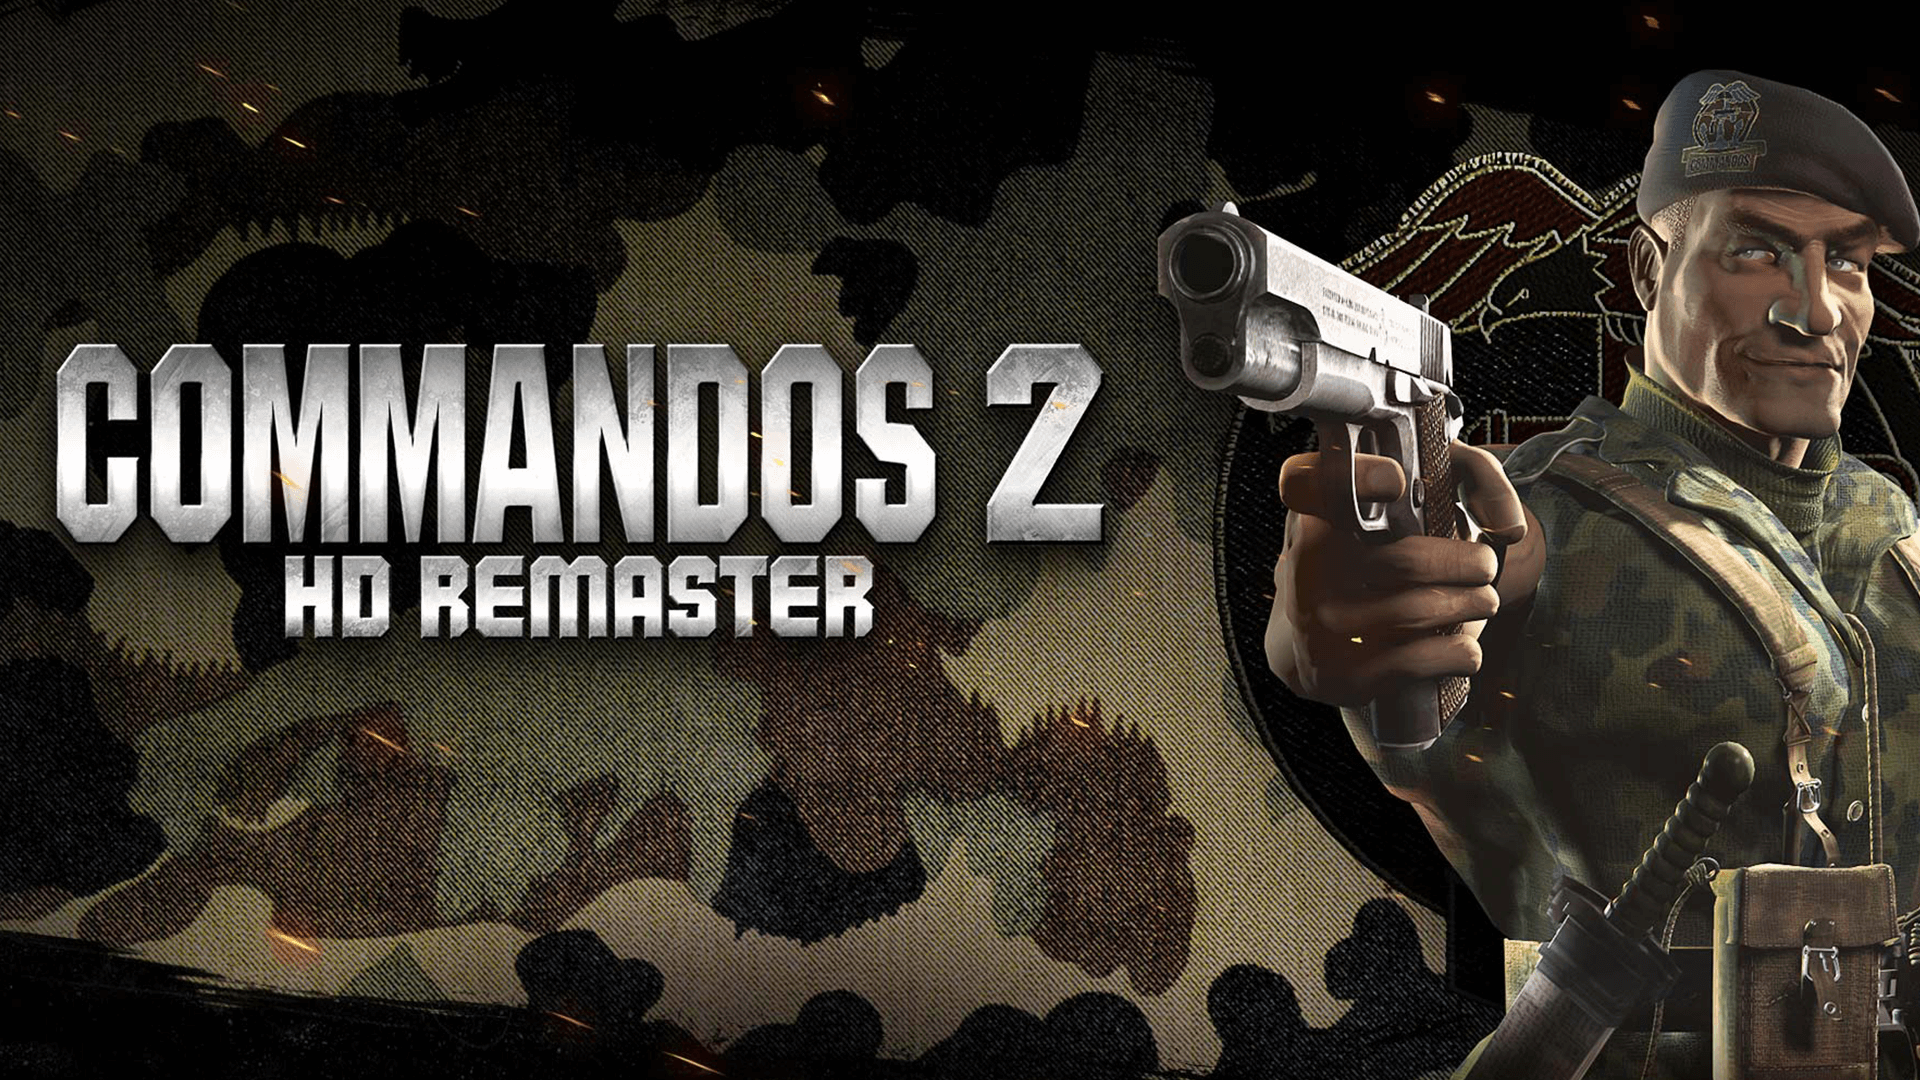 Commandos 2 HD Remaster Launches On December 4